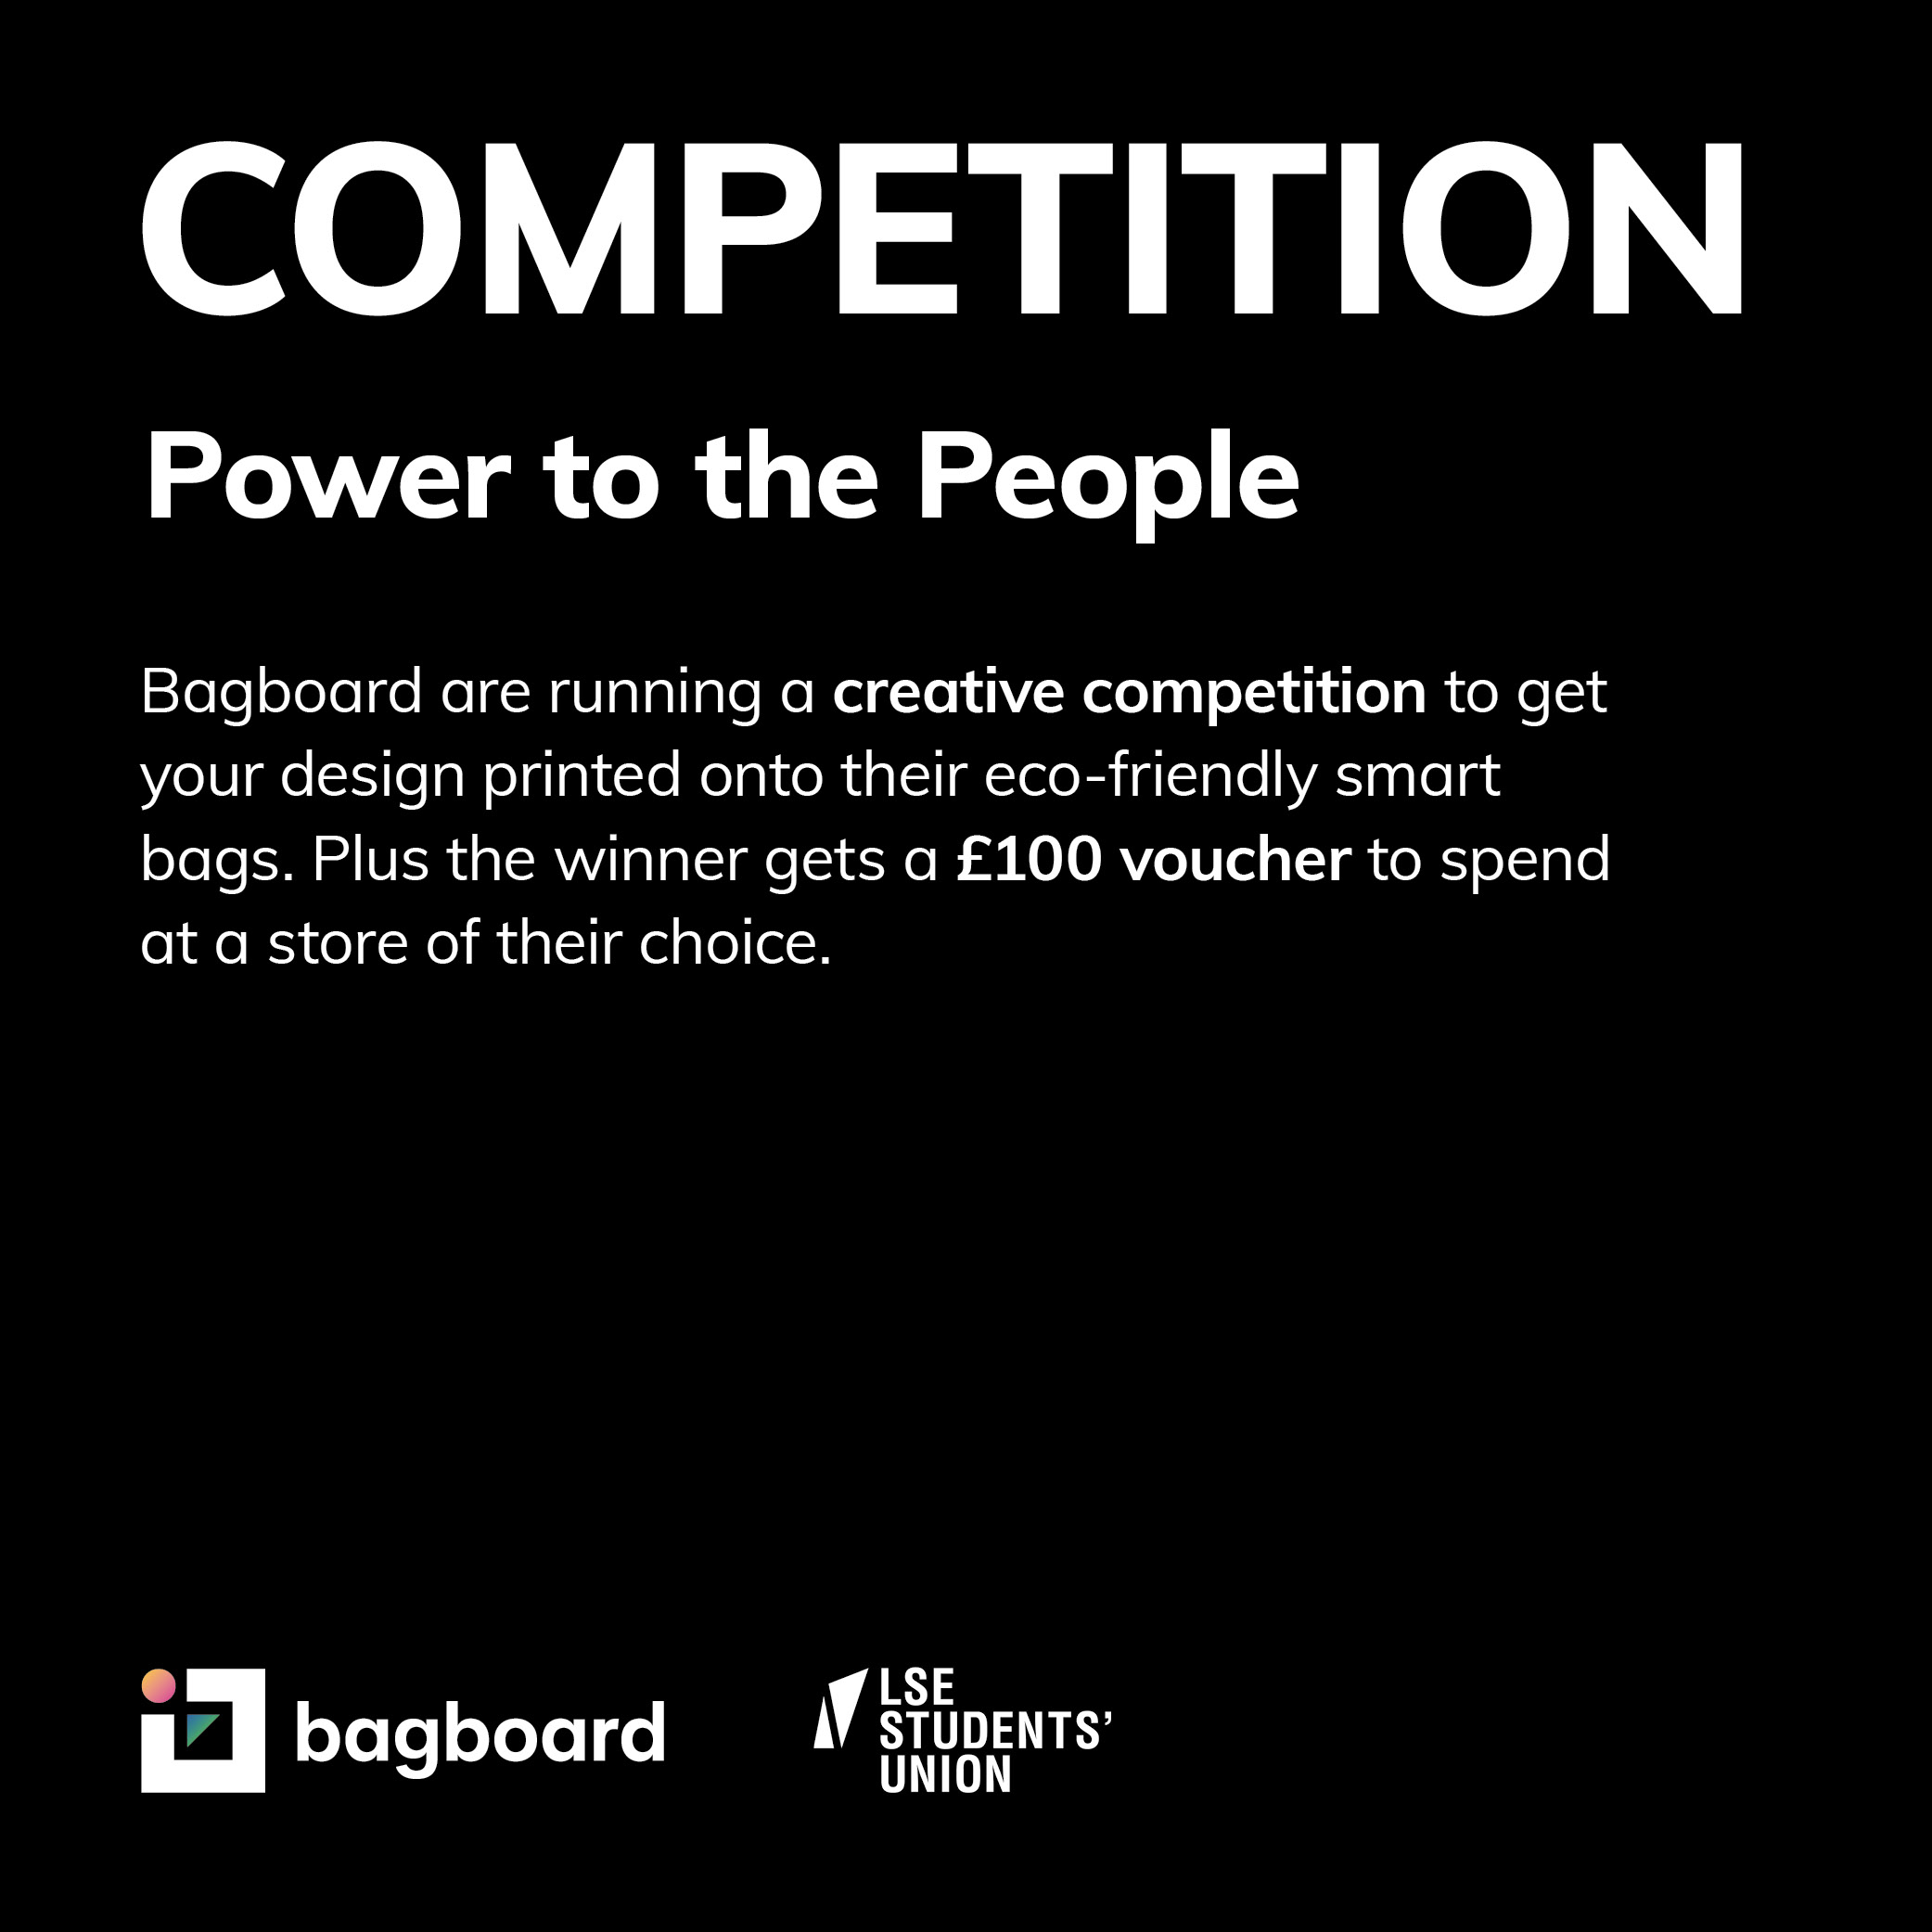 BagboardxLSESU Competition